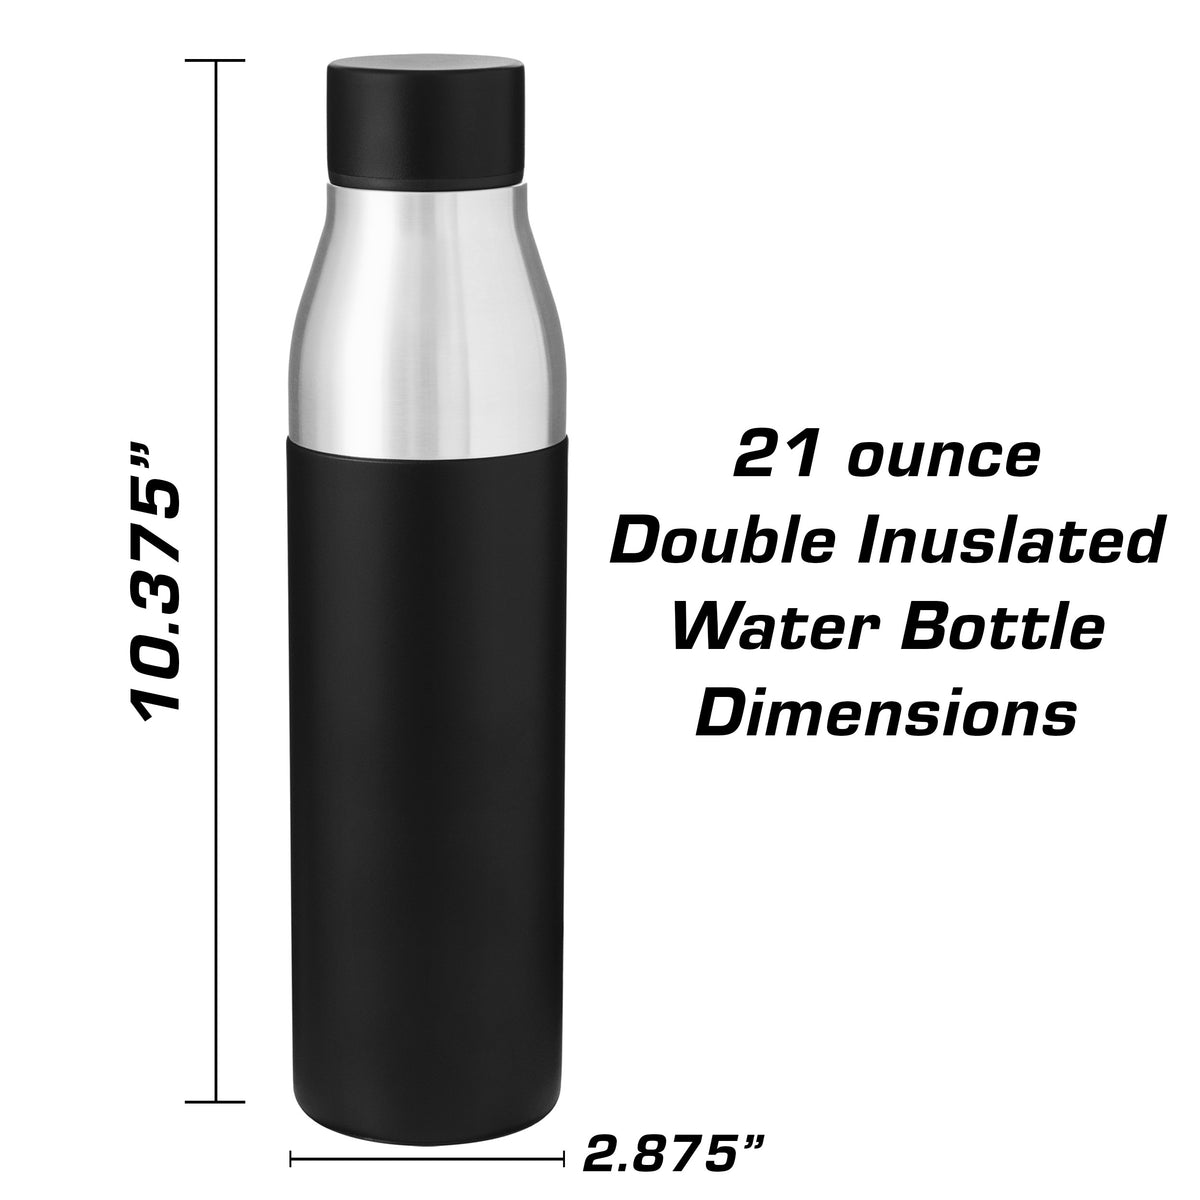 Audi RS3 S3 Hatchback Insulated Stainless Steel Water Bottle - 21 oz